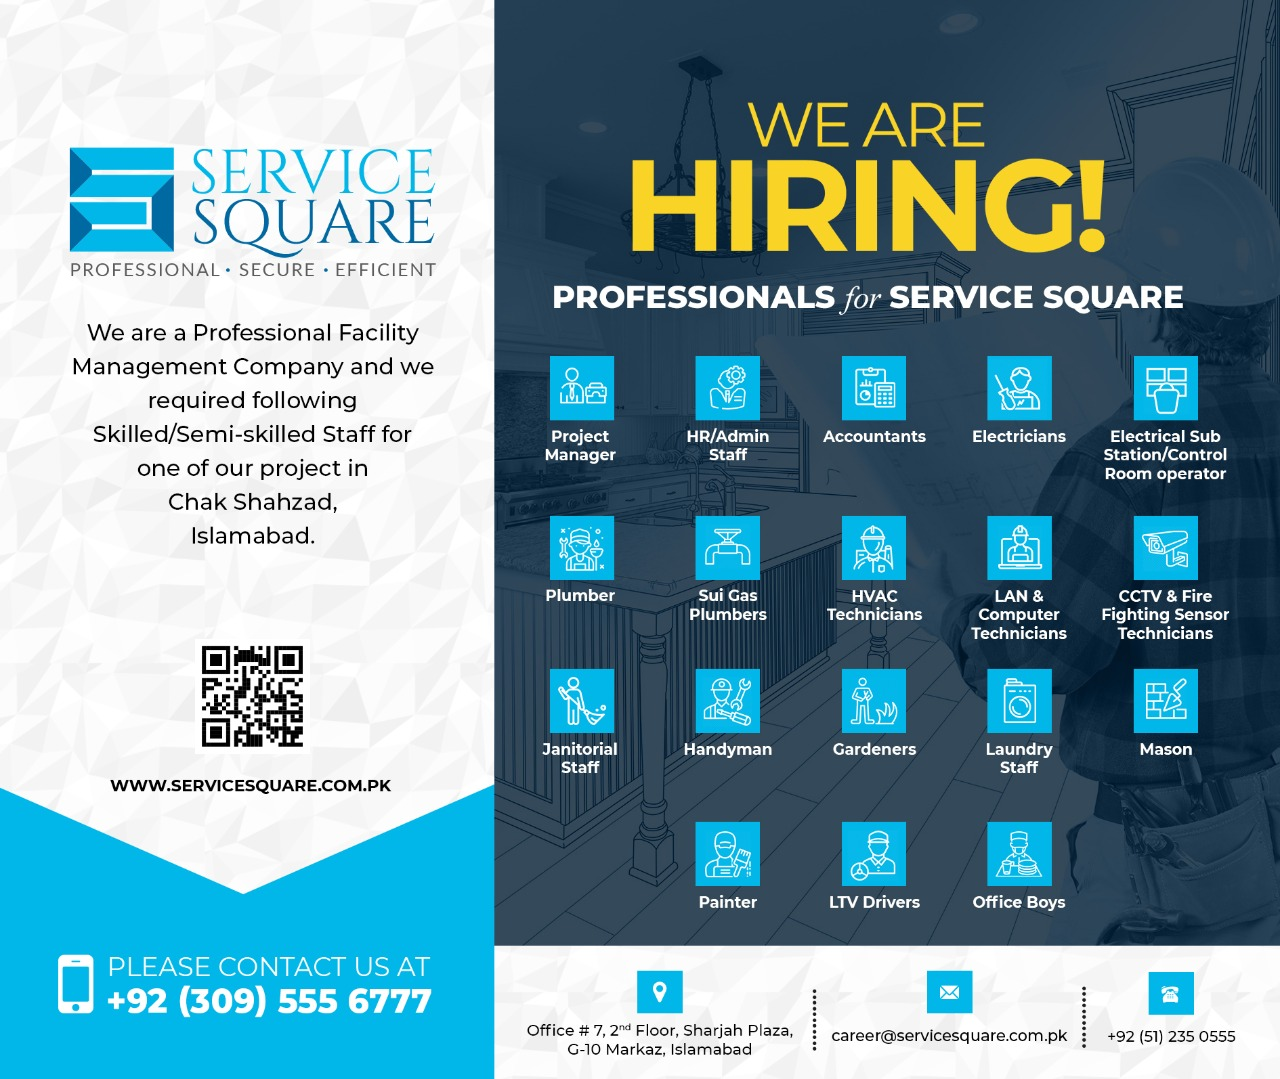 https://www.pakpositions.com/company/service-square